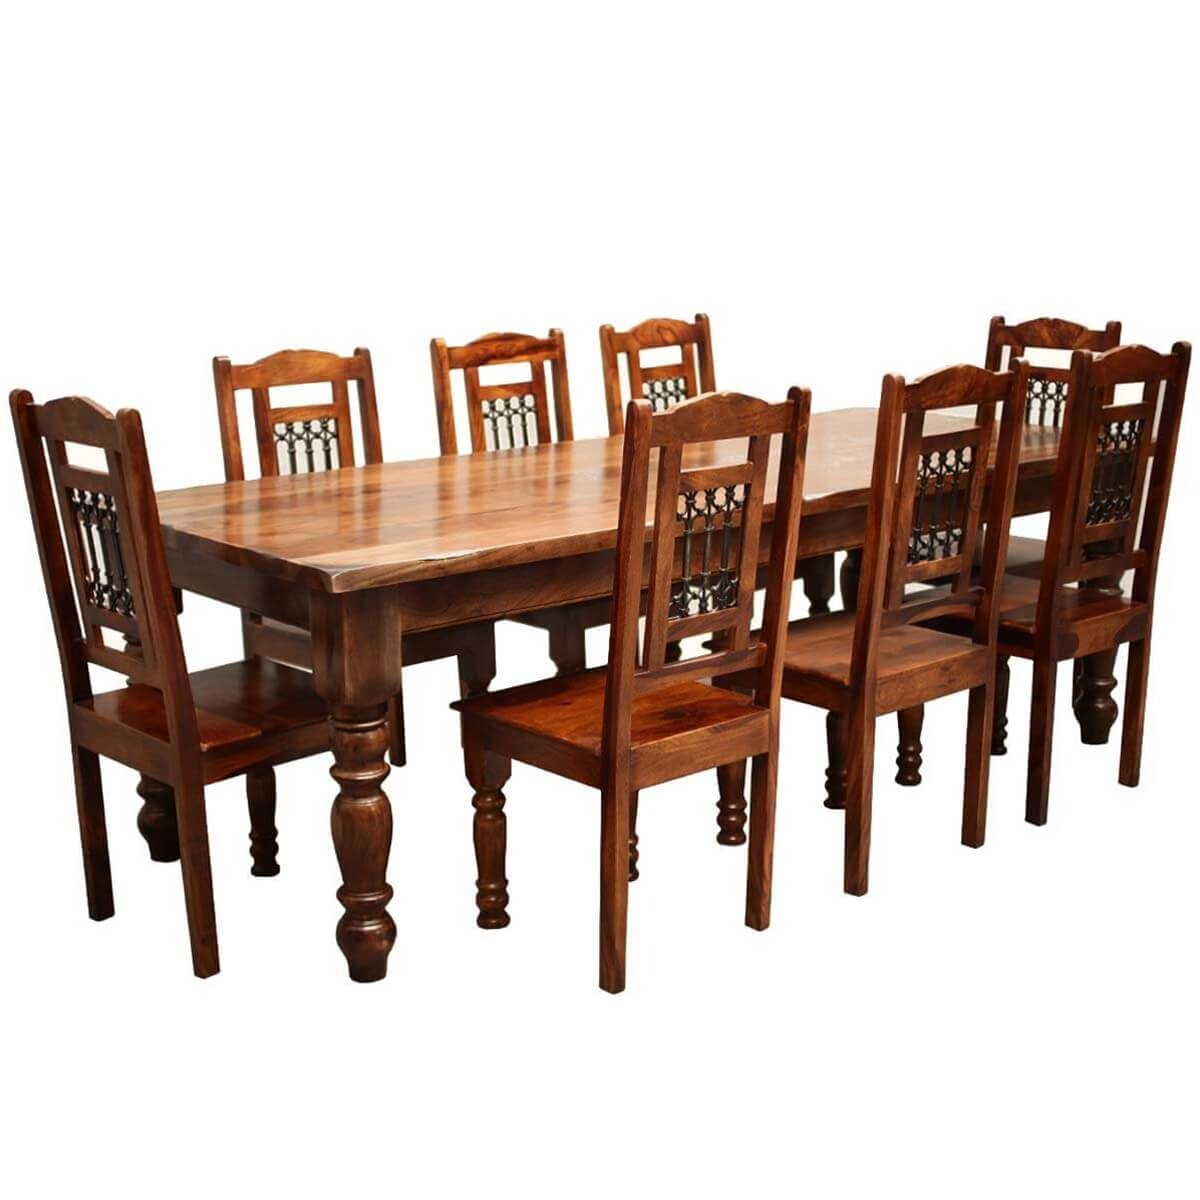 Room Dining Room Dining Tables 92 Rustic Solid Wood Large Dining Room